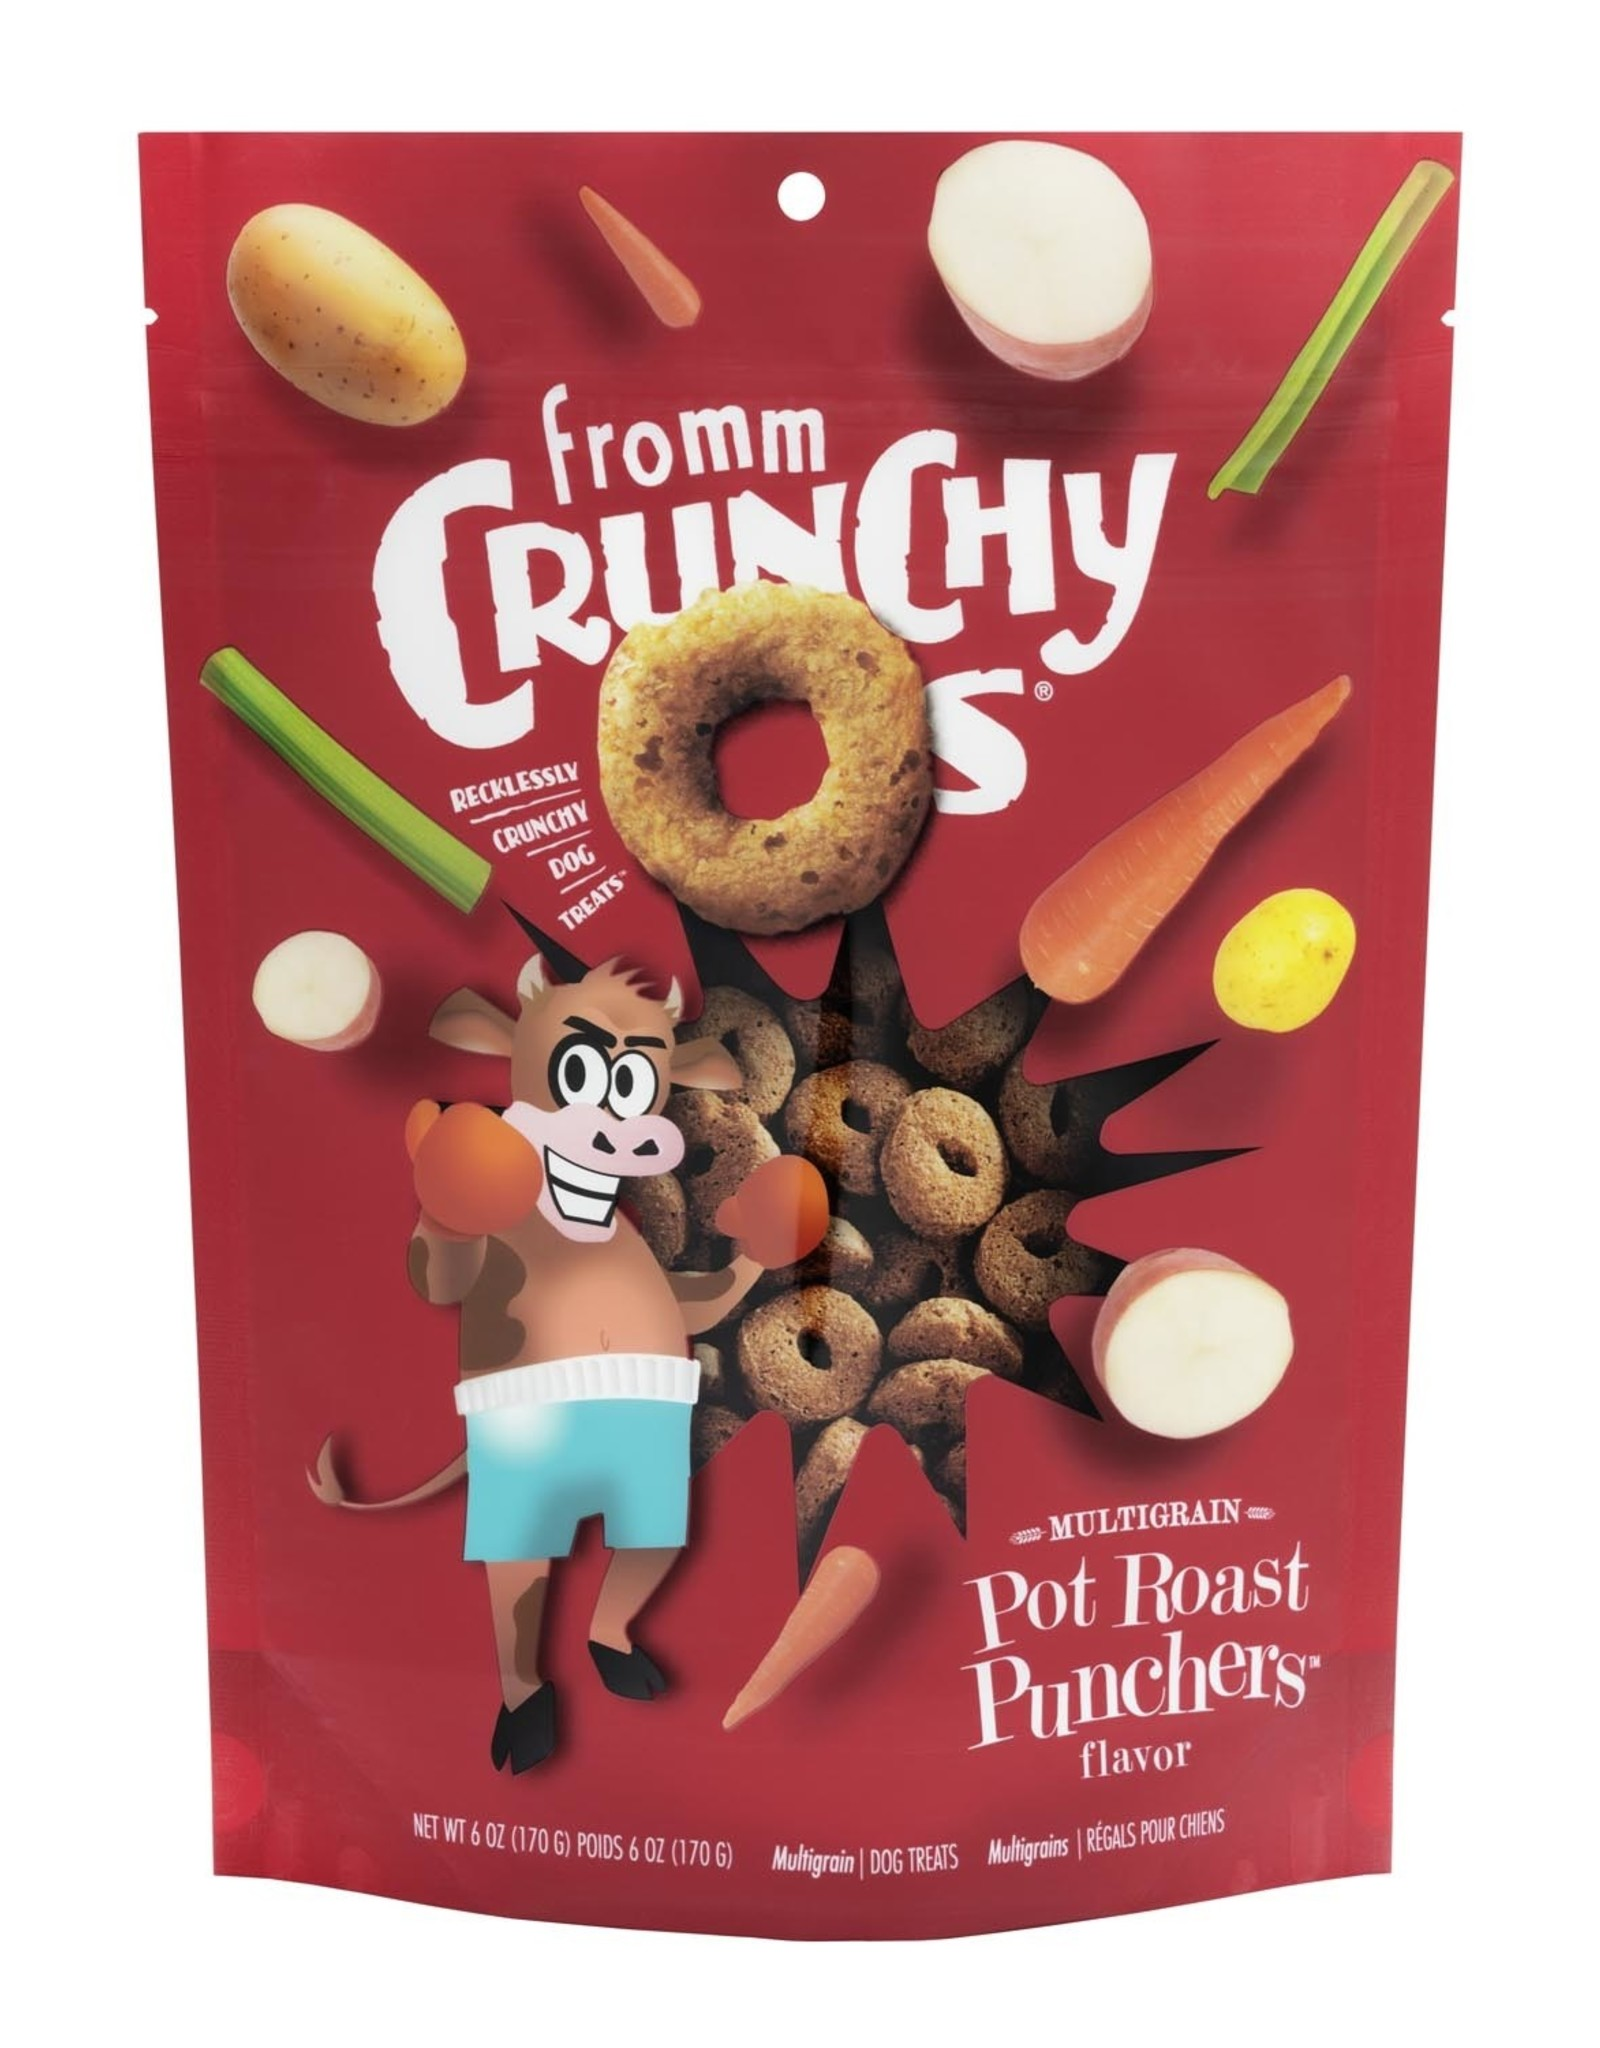 Fromm Fromm Crunchy O's: Pot Roast Punchers, 6 oz